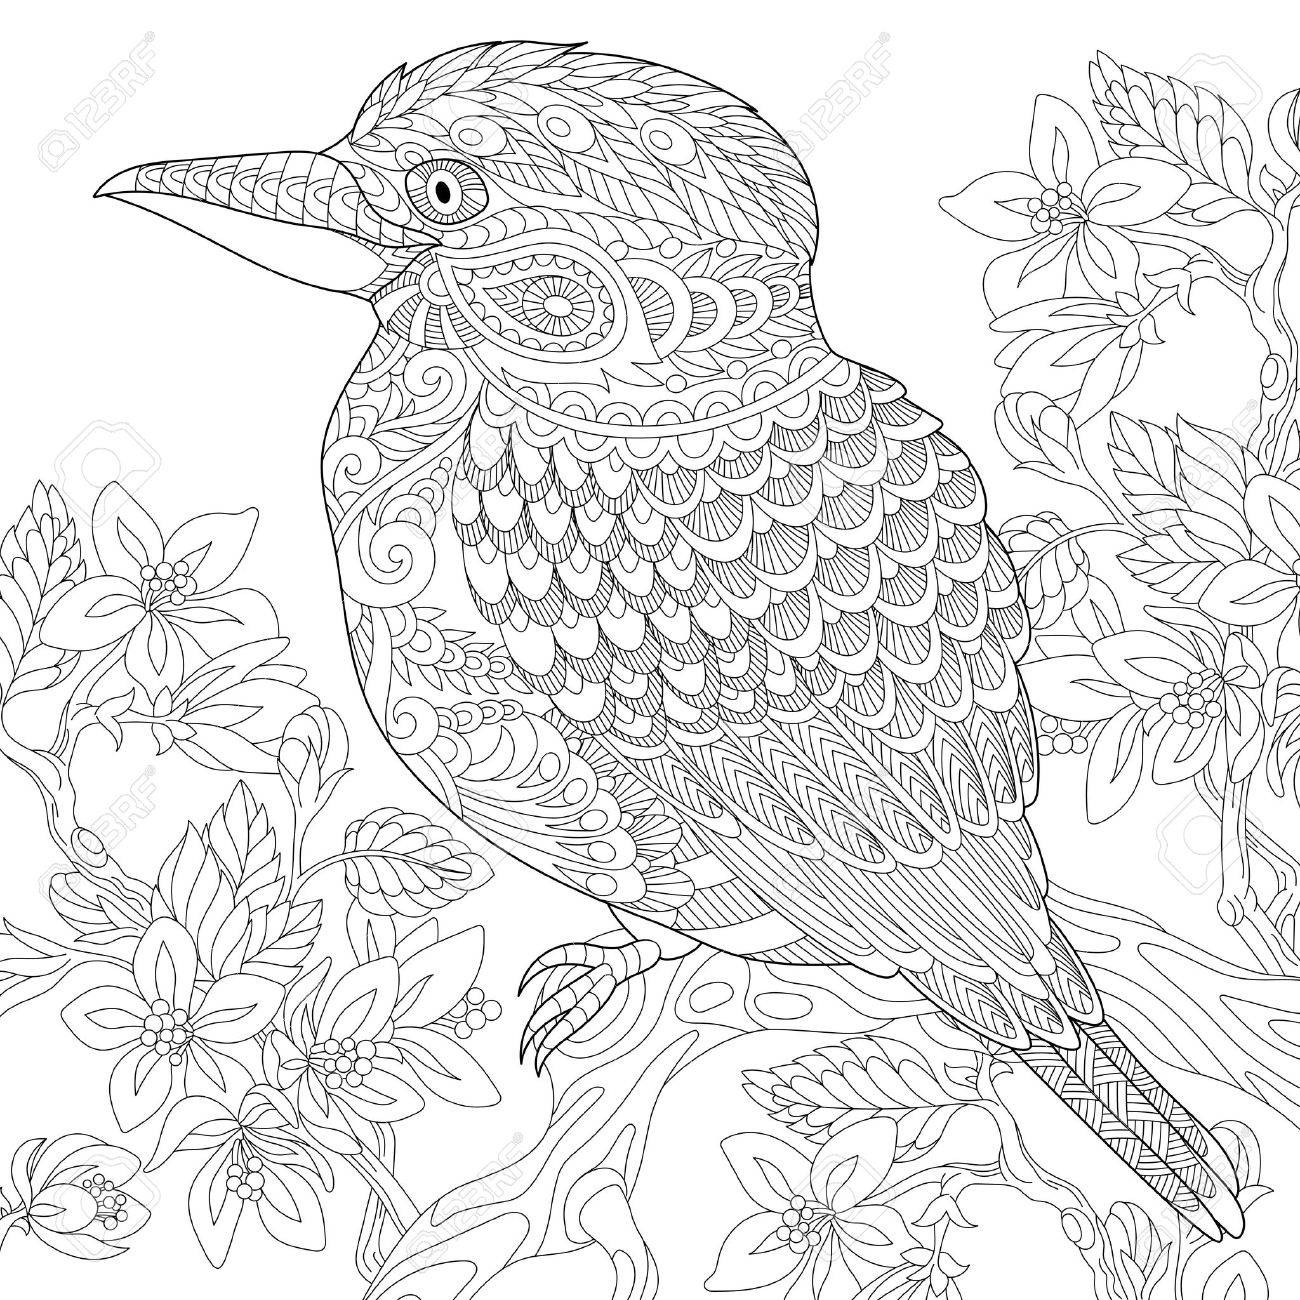 Stylized Australian Kookaburra Bird And Cherry Blossoming Tree Freehand Sketch For Adult Anti Stress Coloring